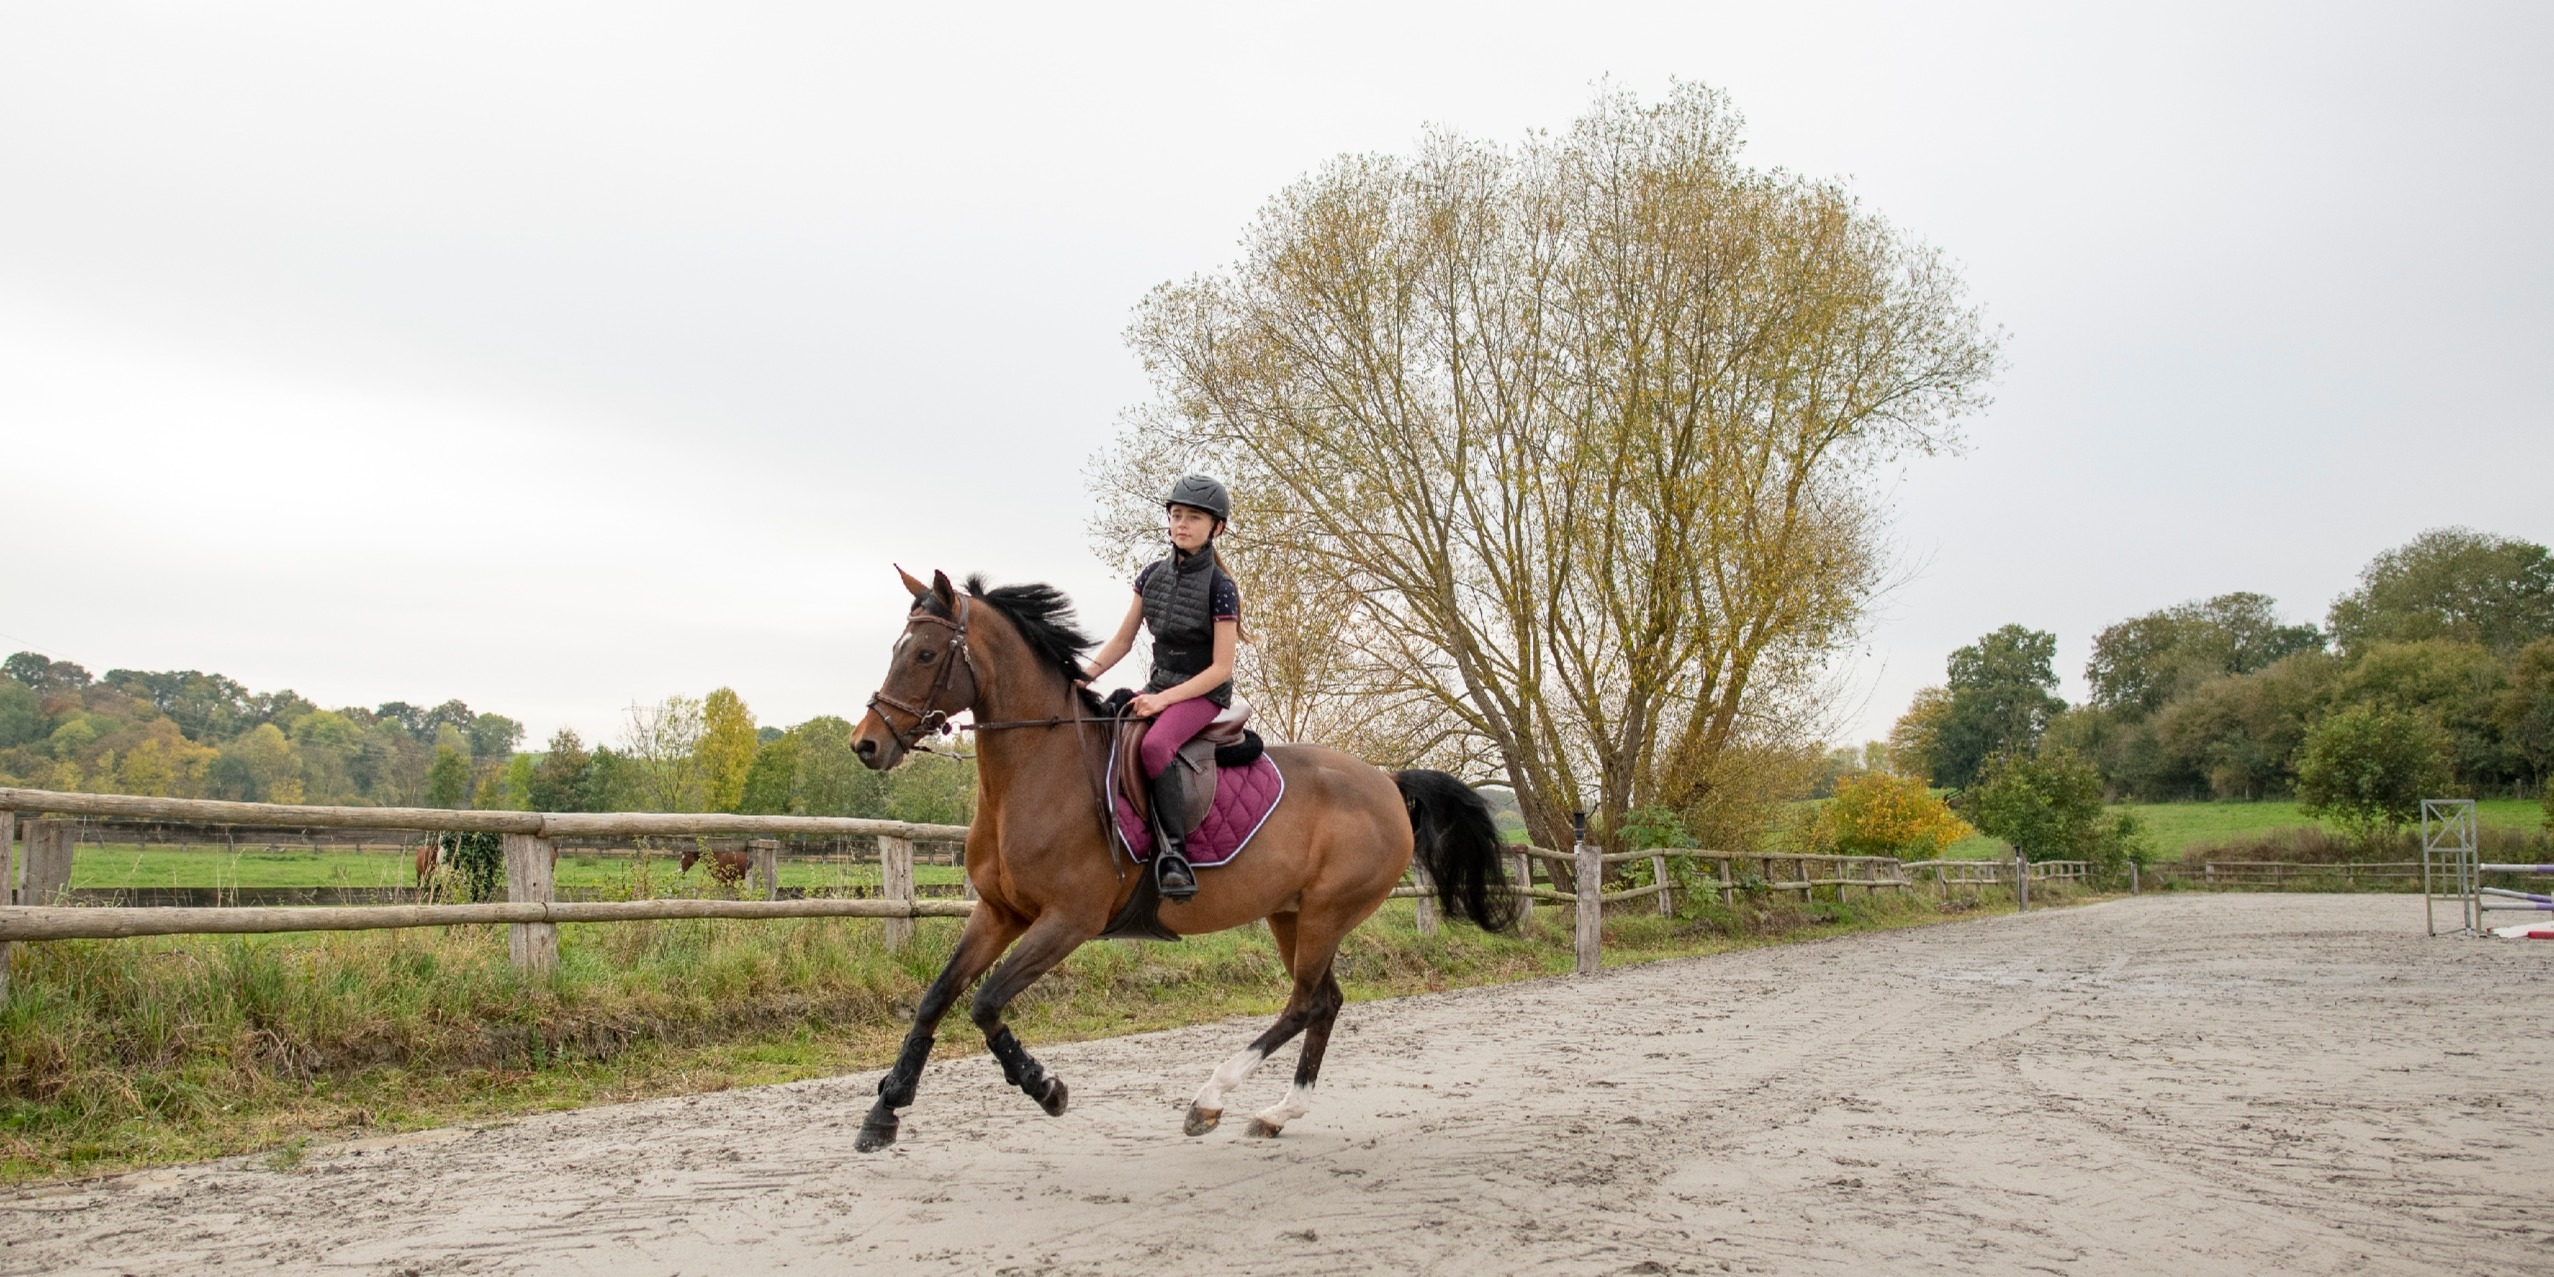 Where's Best To Practice Horse Riding For Beginners?